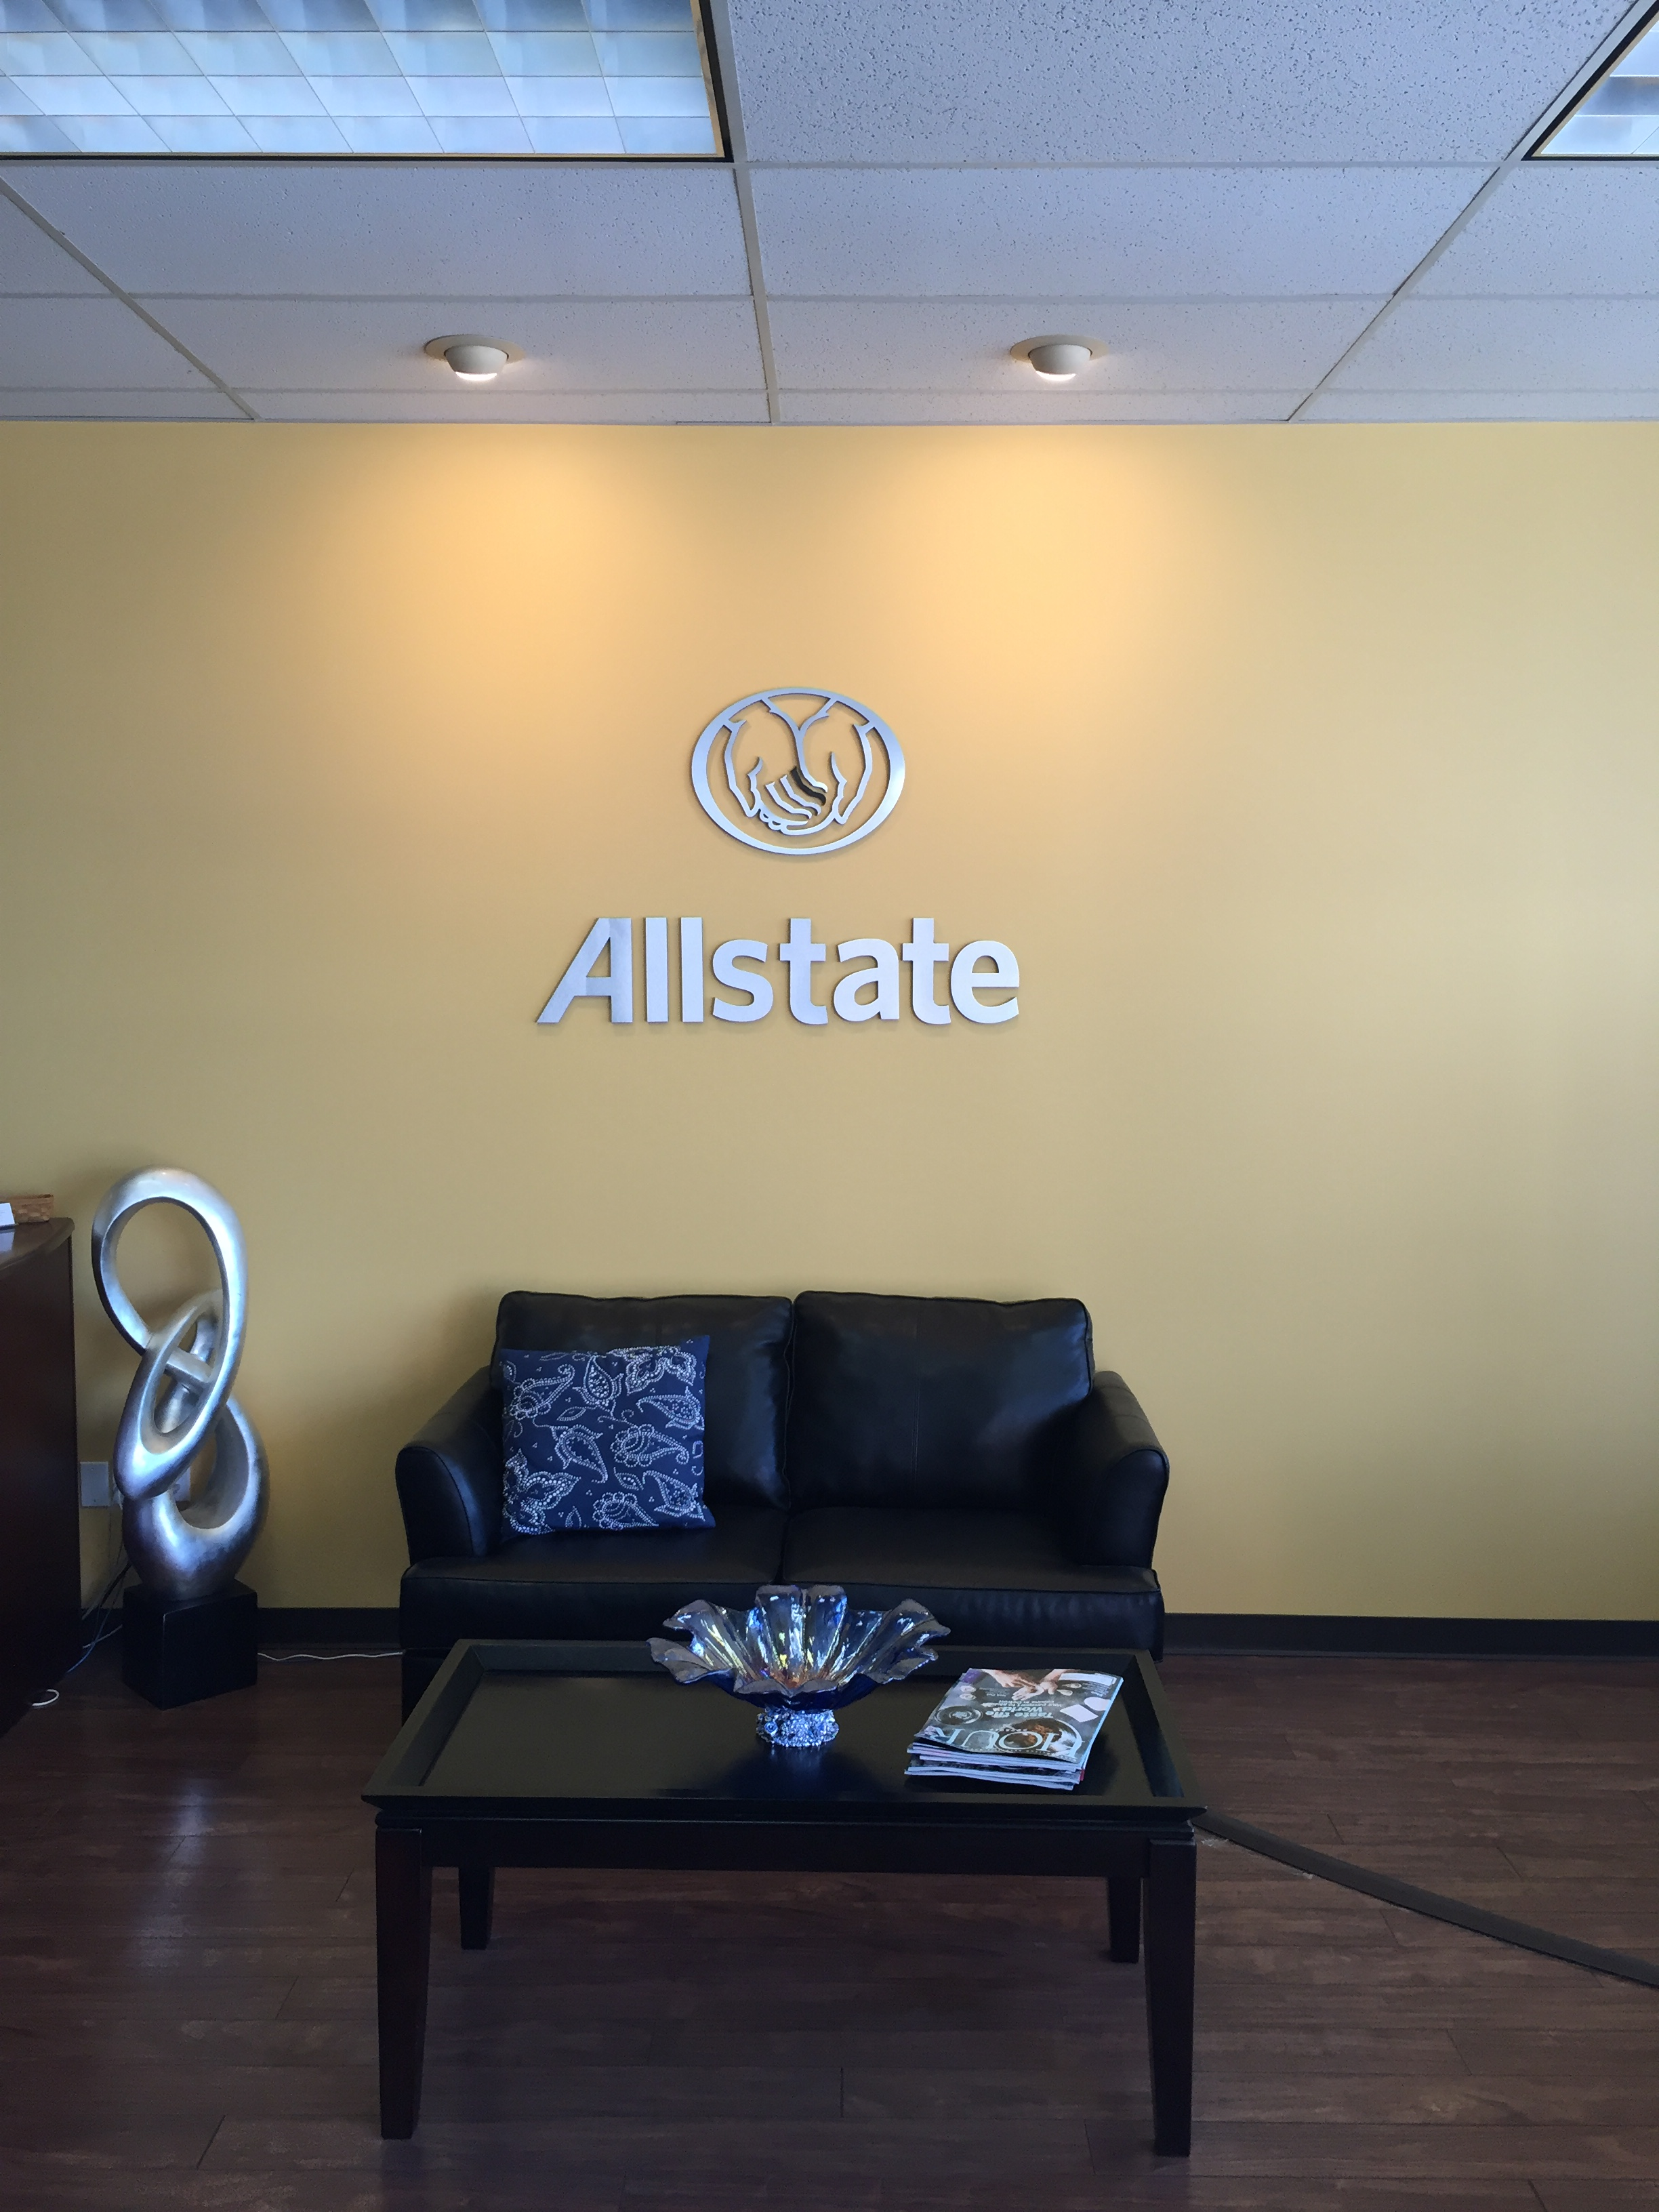 Life home car insurance quotes in ann arbor mi for Allstate motor club membership